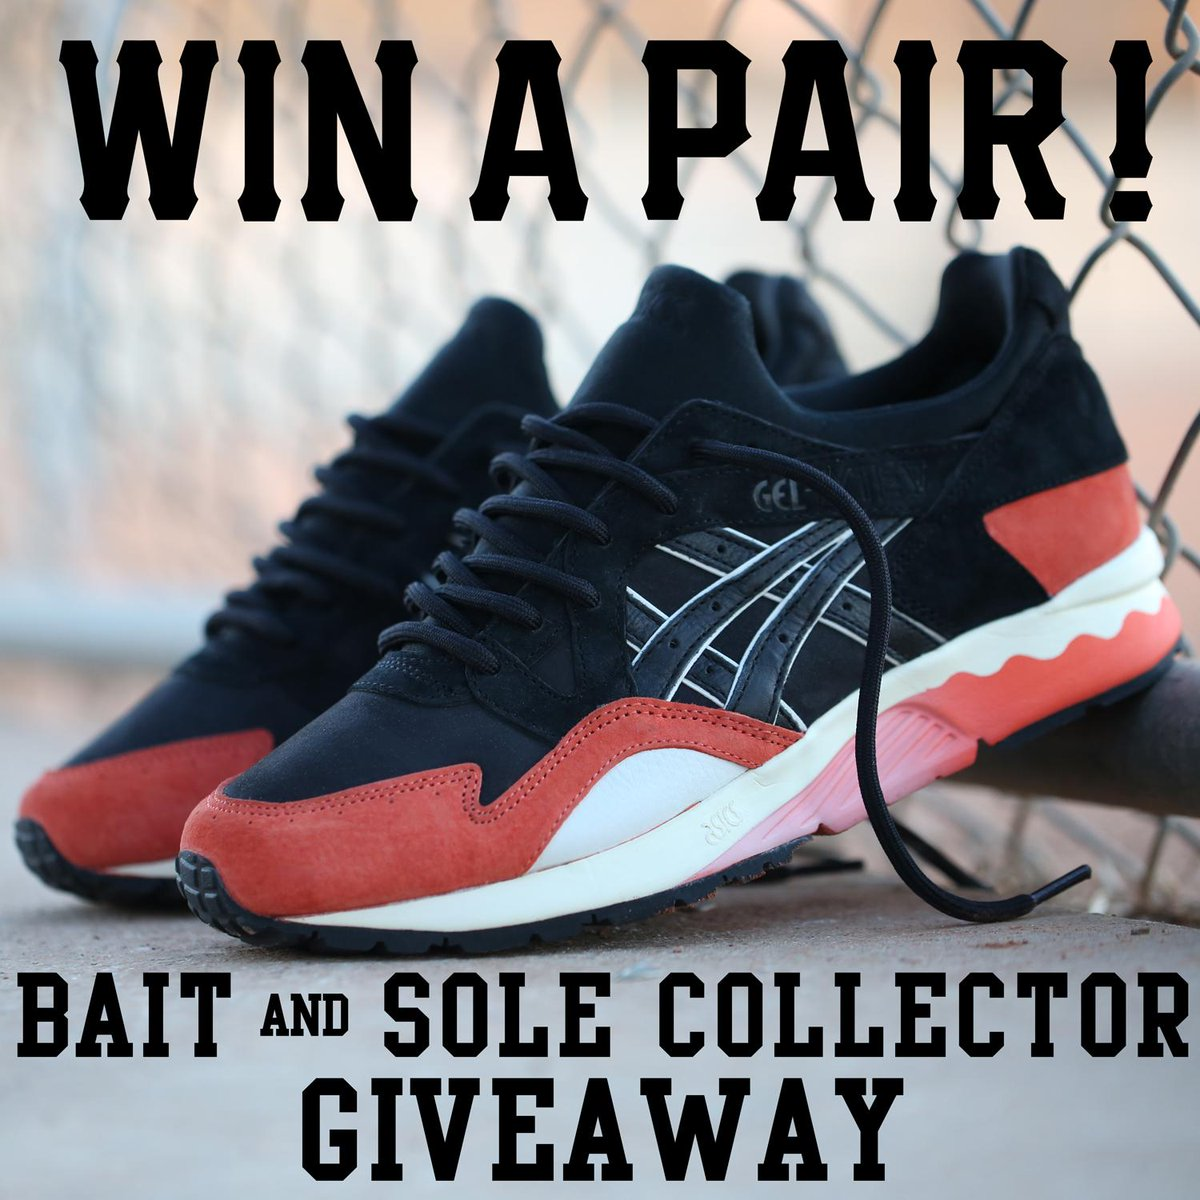 Want to win the new Bait x ASICS Gel Lyte V collab? Follow @SoleCollector and @BaitMeCom + RT this tweet to enter http://t.co/TvHOeue8Sg